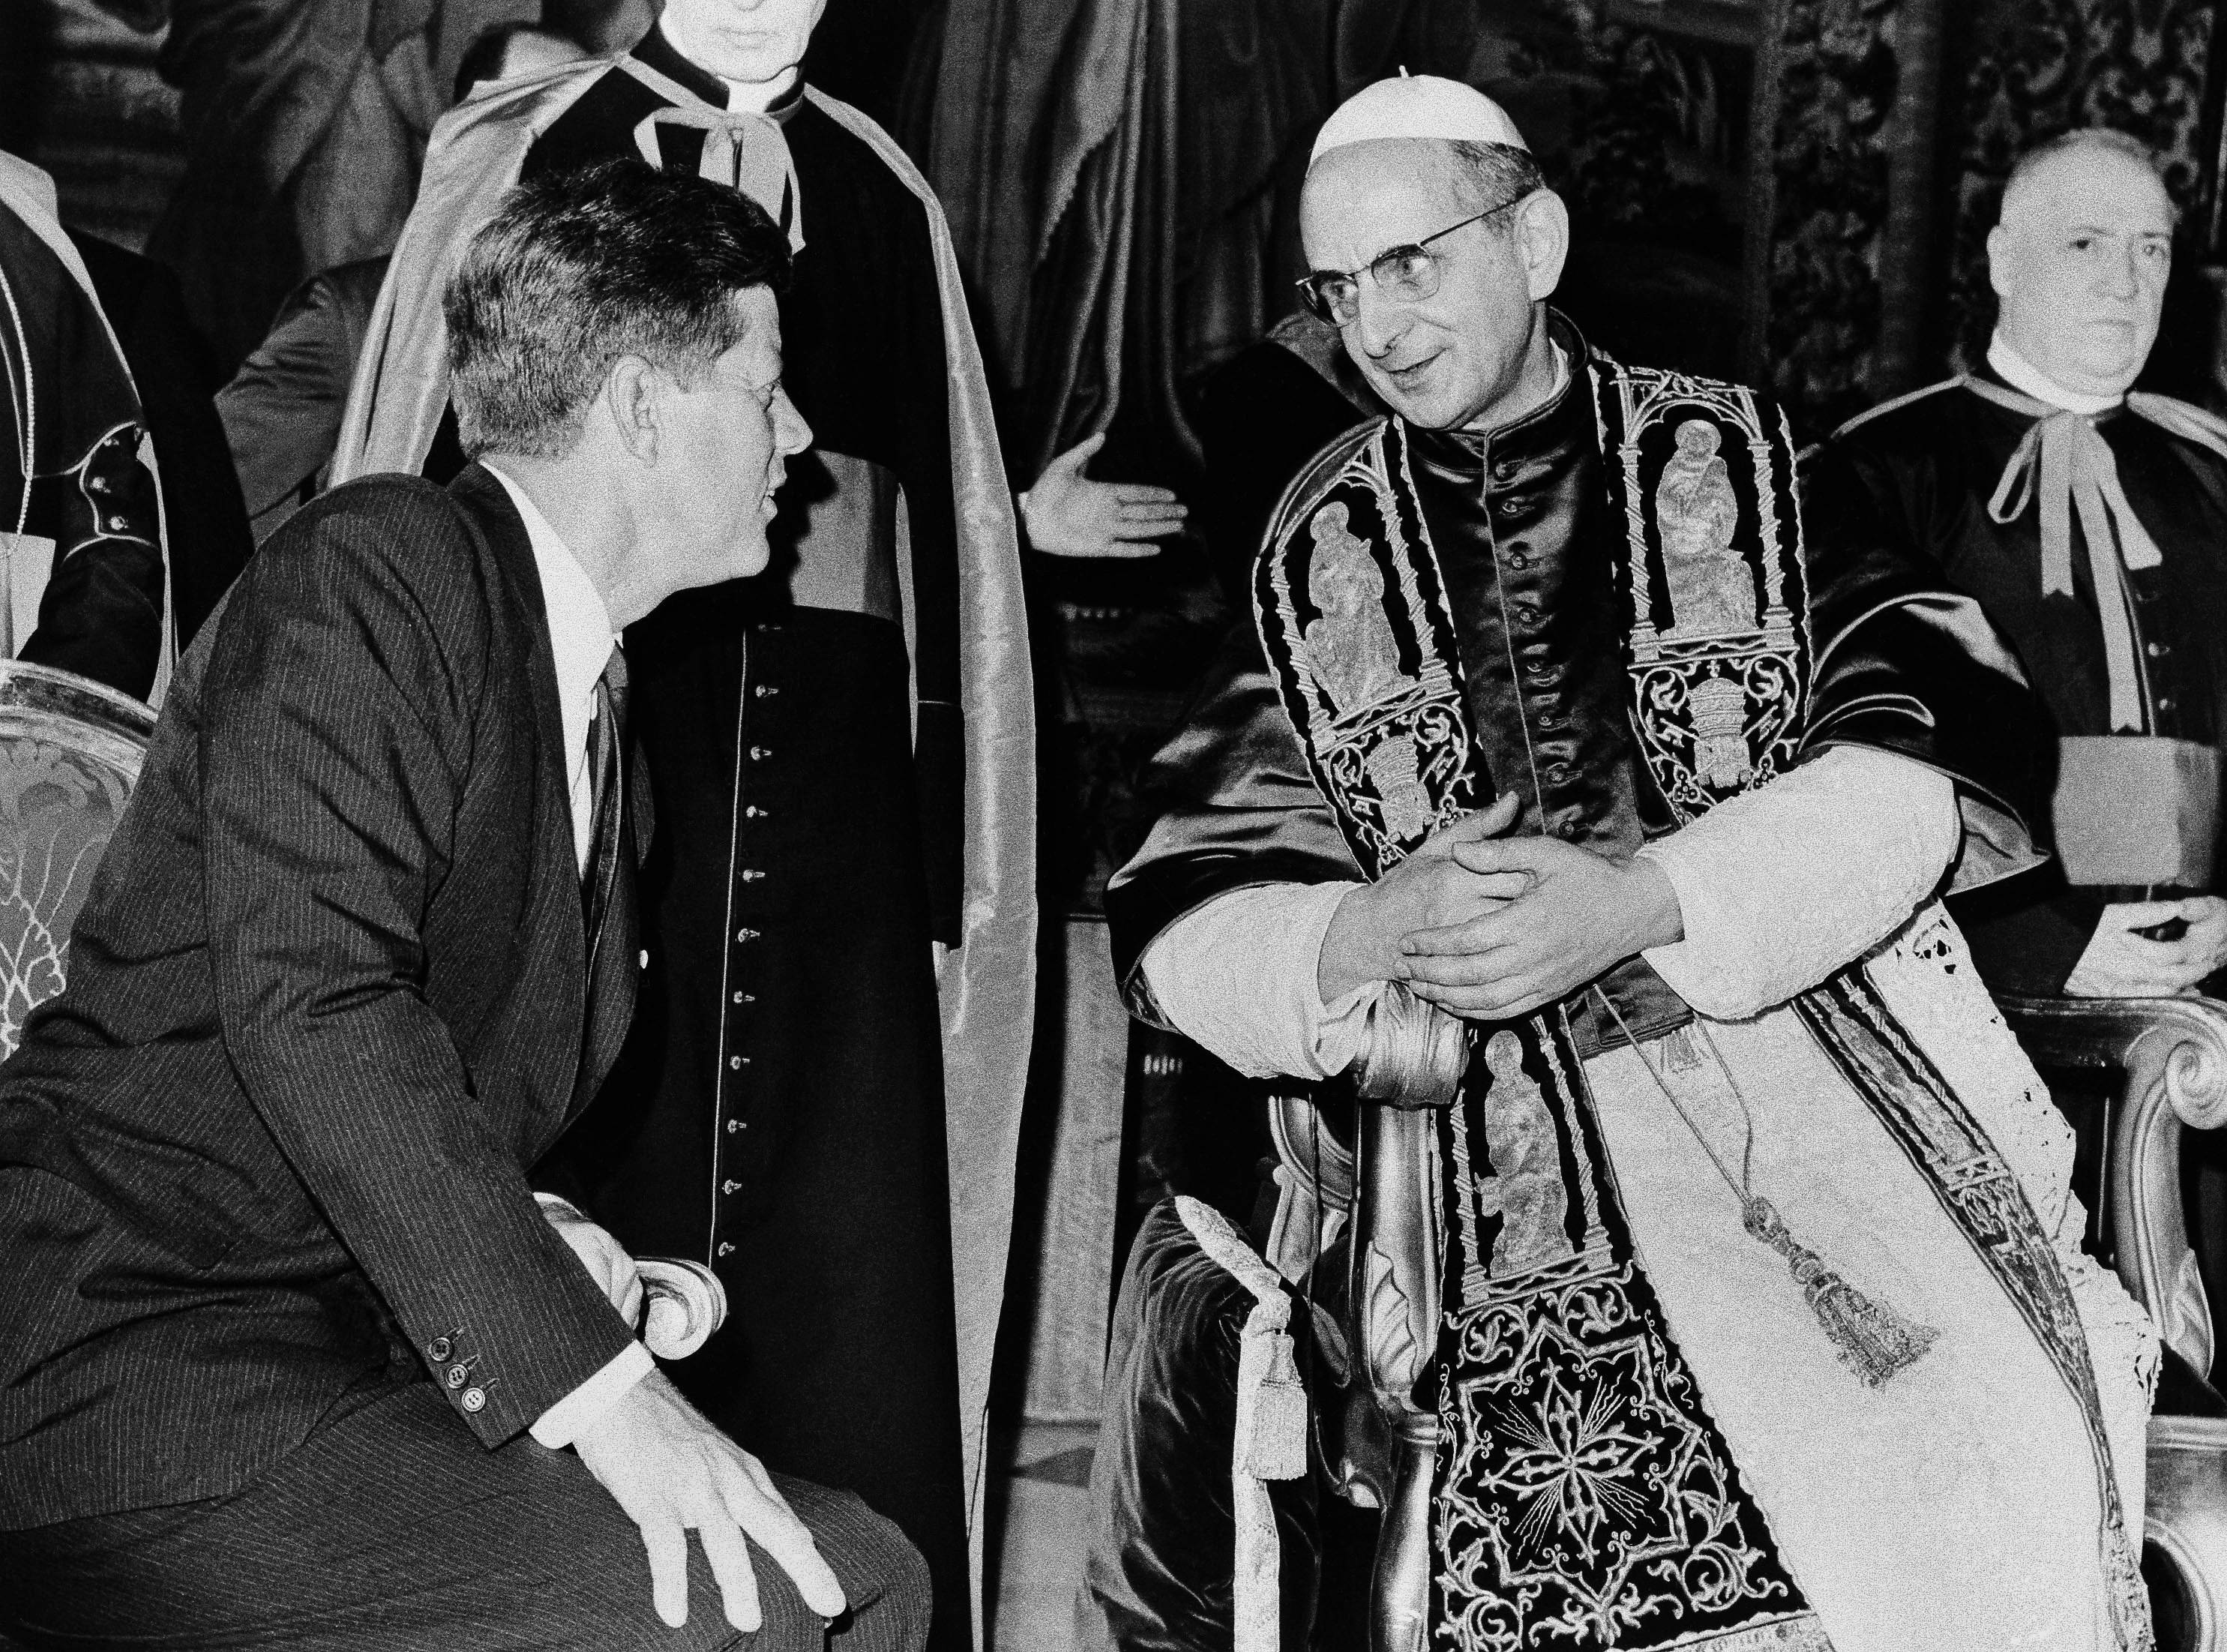 IMAGES: Popes' meetings with U.S. presidents